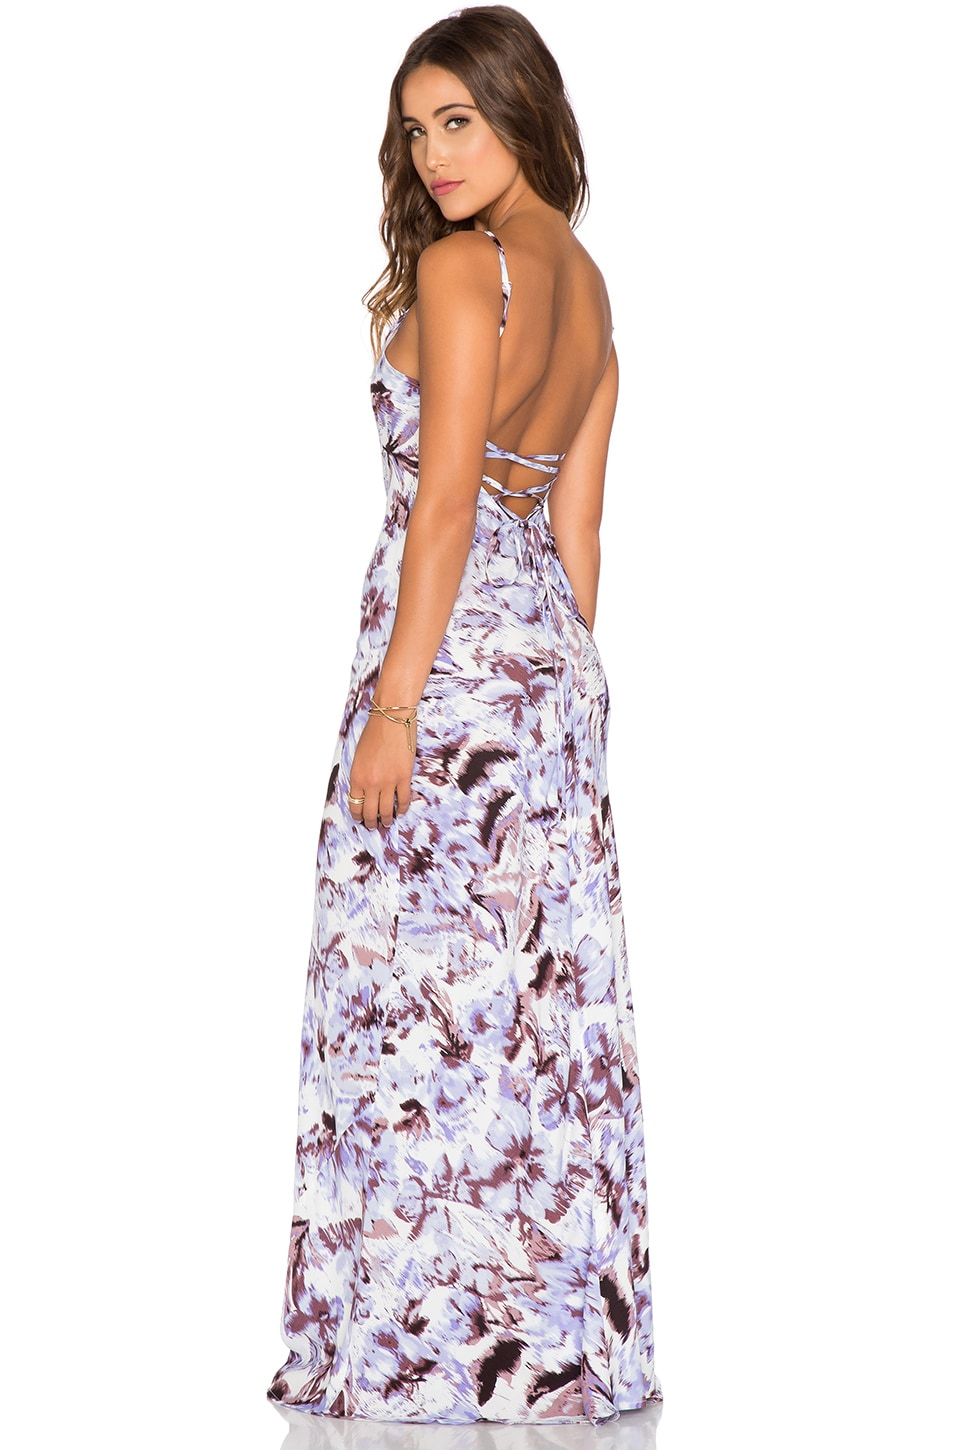 FLYNN SKYE Anastasia Maxi Dress in Blurred Vision